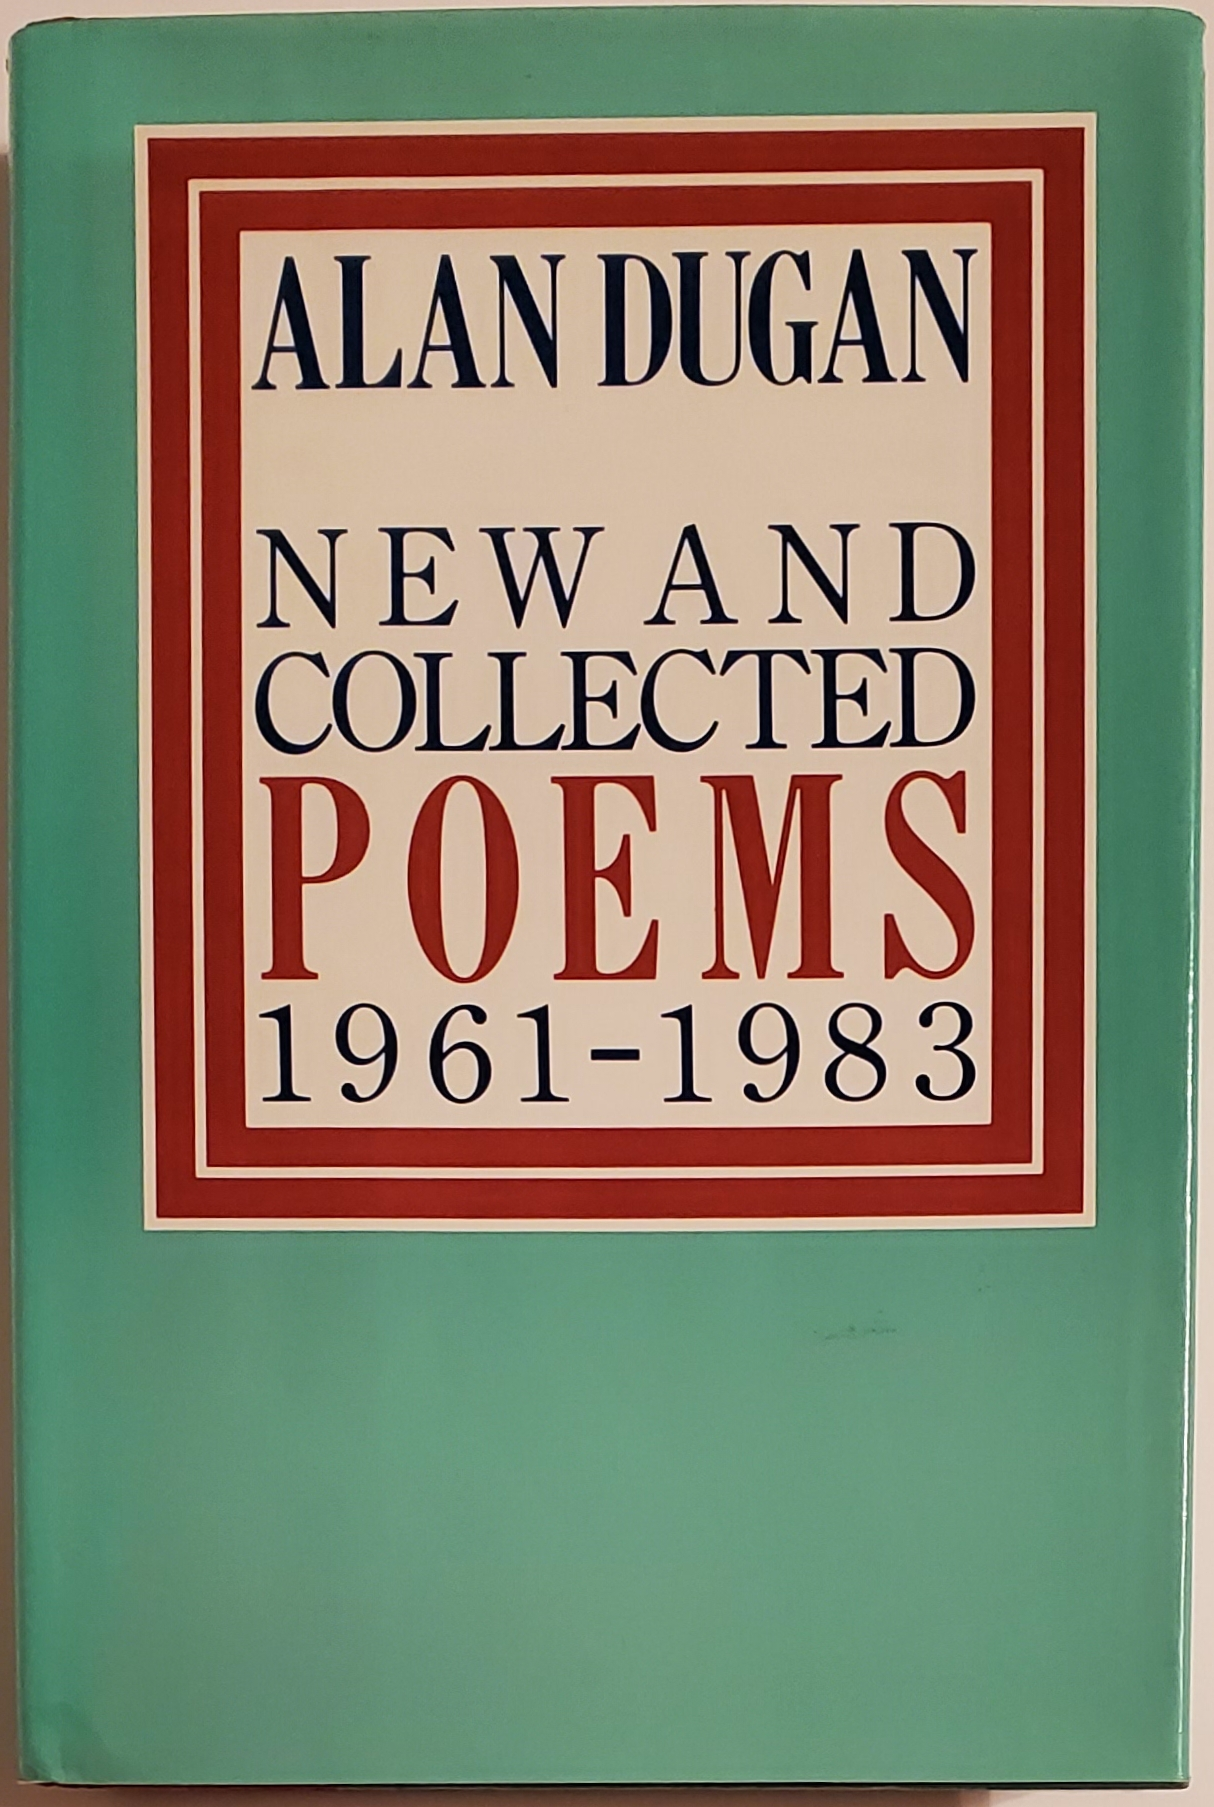 NEW AND COLLECTED POEMS 1961-1983. Alan Dugan.